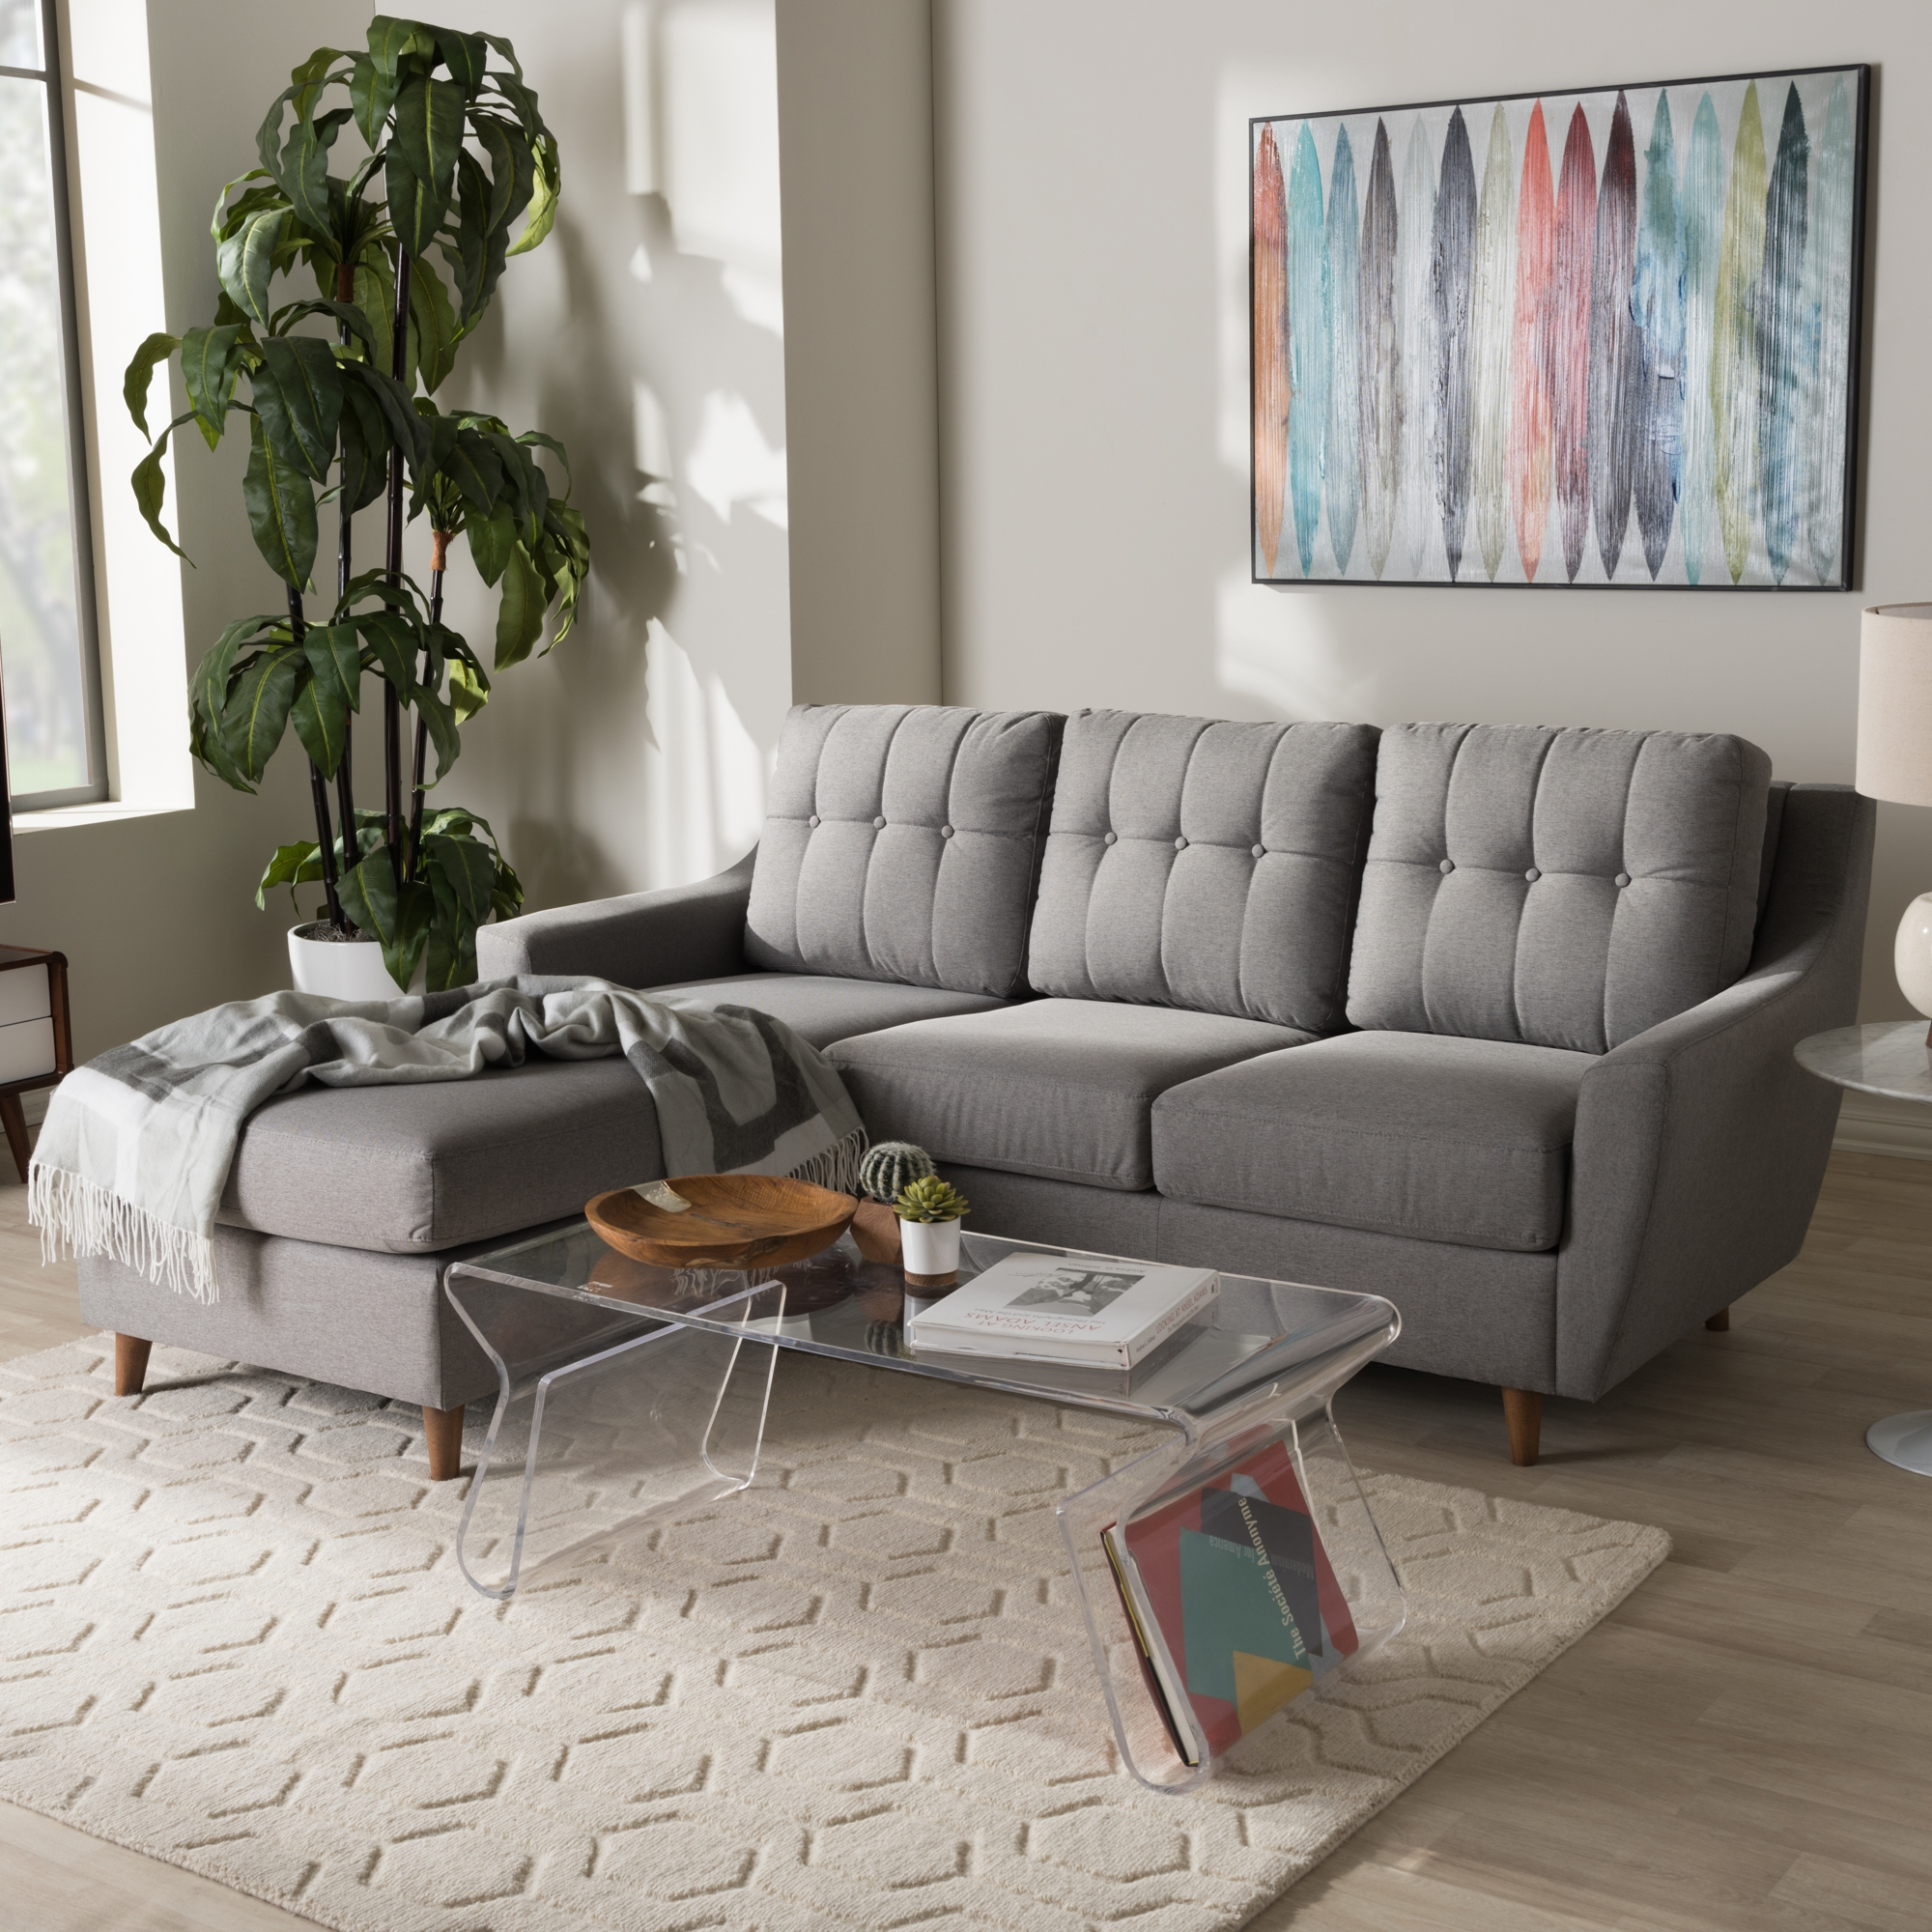 baxton studio mckenzie midcentury grey fabric upholstered 2piece sectional - 2 Piece Sectional